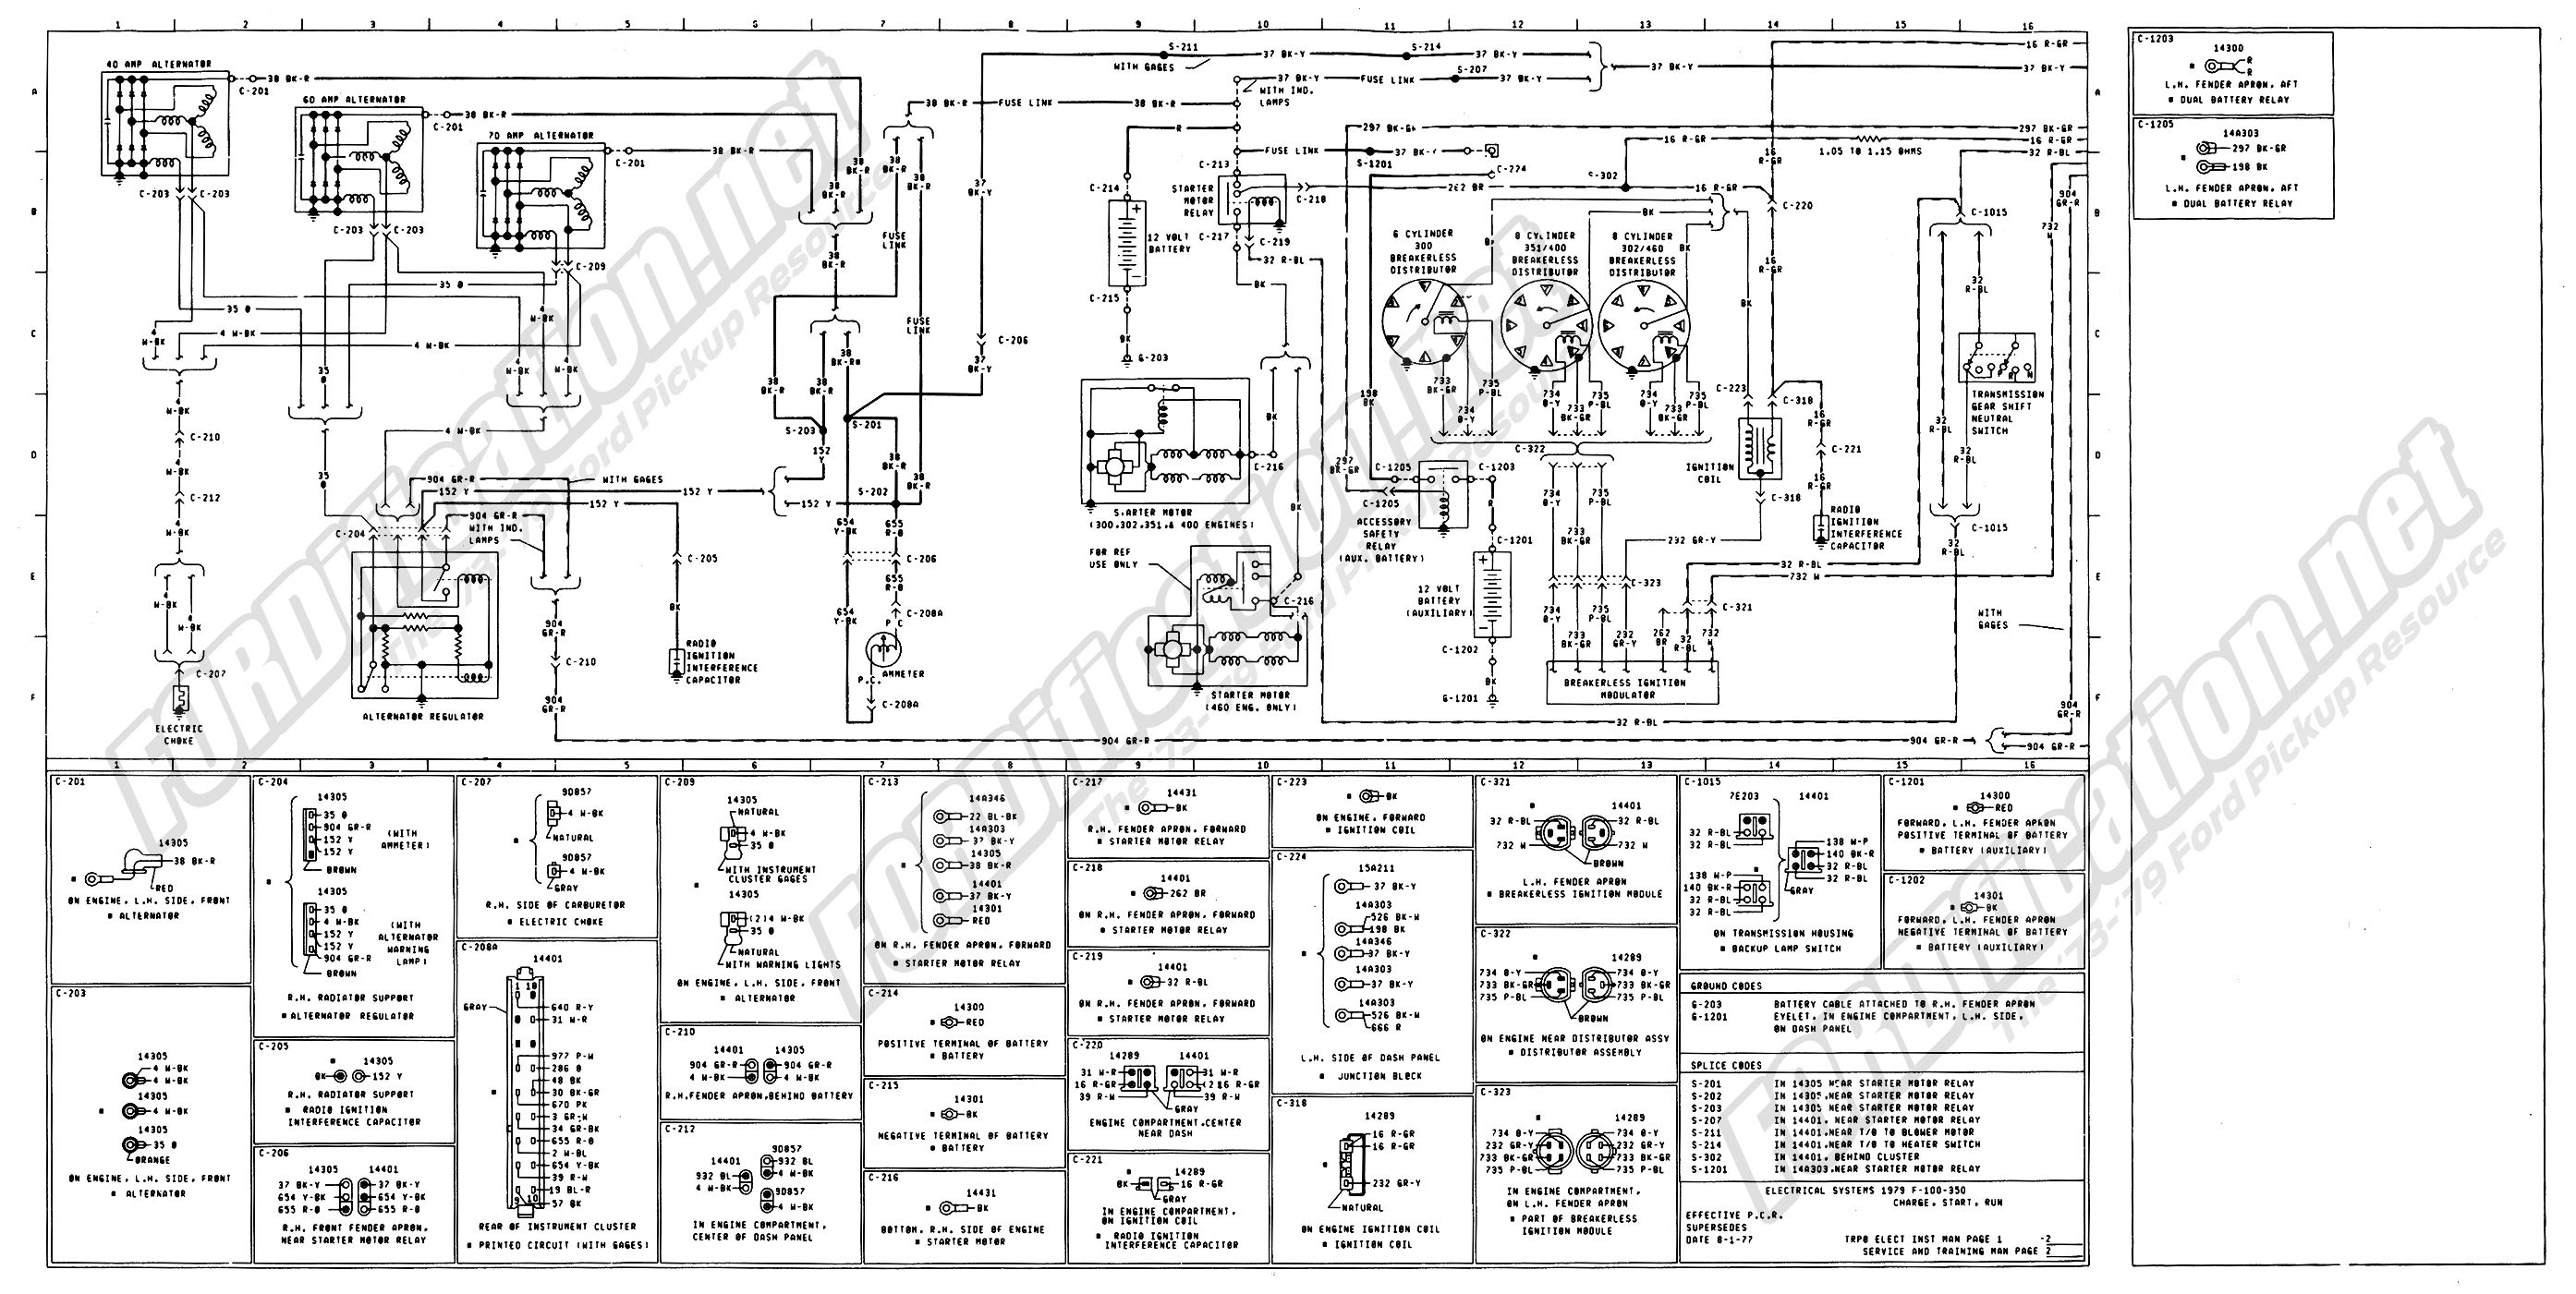 wiring diagram for 1976 ford f250 the wiring diagram 1976 ford f700 dash wiring 1976 wiring diagrams for car or wiring